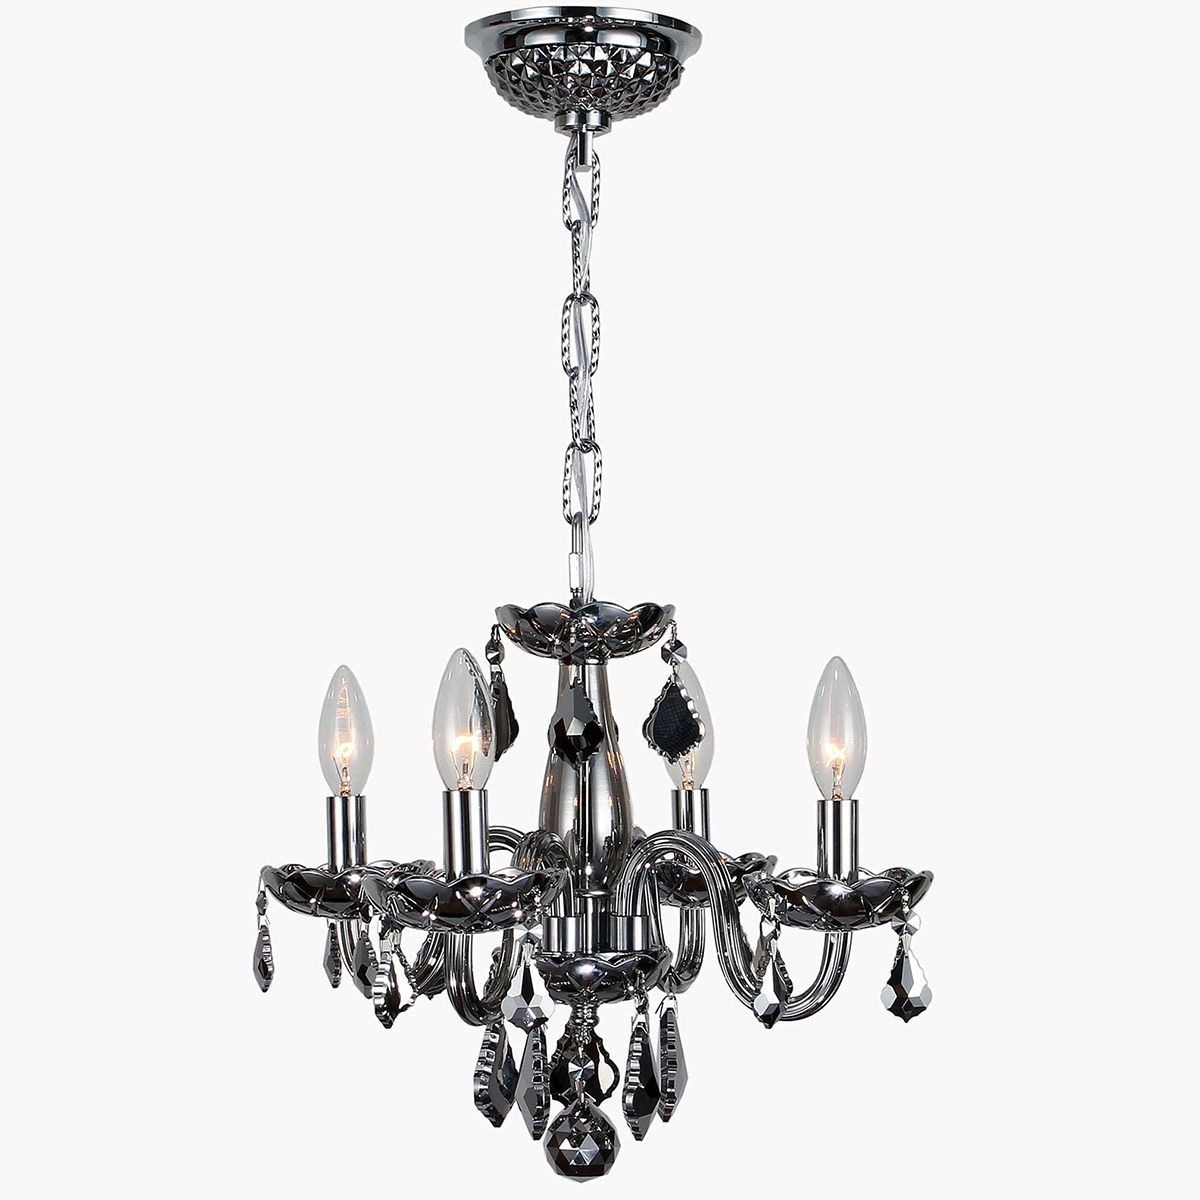 Kids room chandelier modern elegance 4 light full lead chrome brilliance lighting and chandeliers kids room chandelier modern elegance full lead chrome crystal chrome finish mini chandelier light chrome finish arubaitofo Choice Image